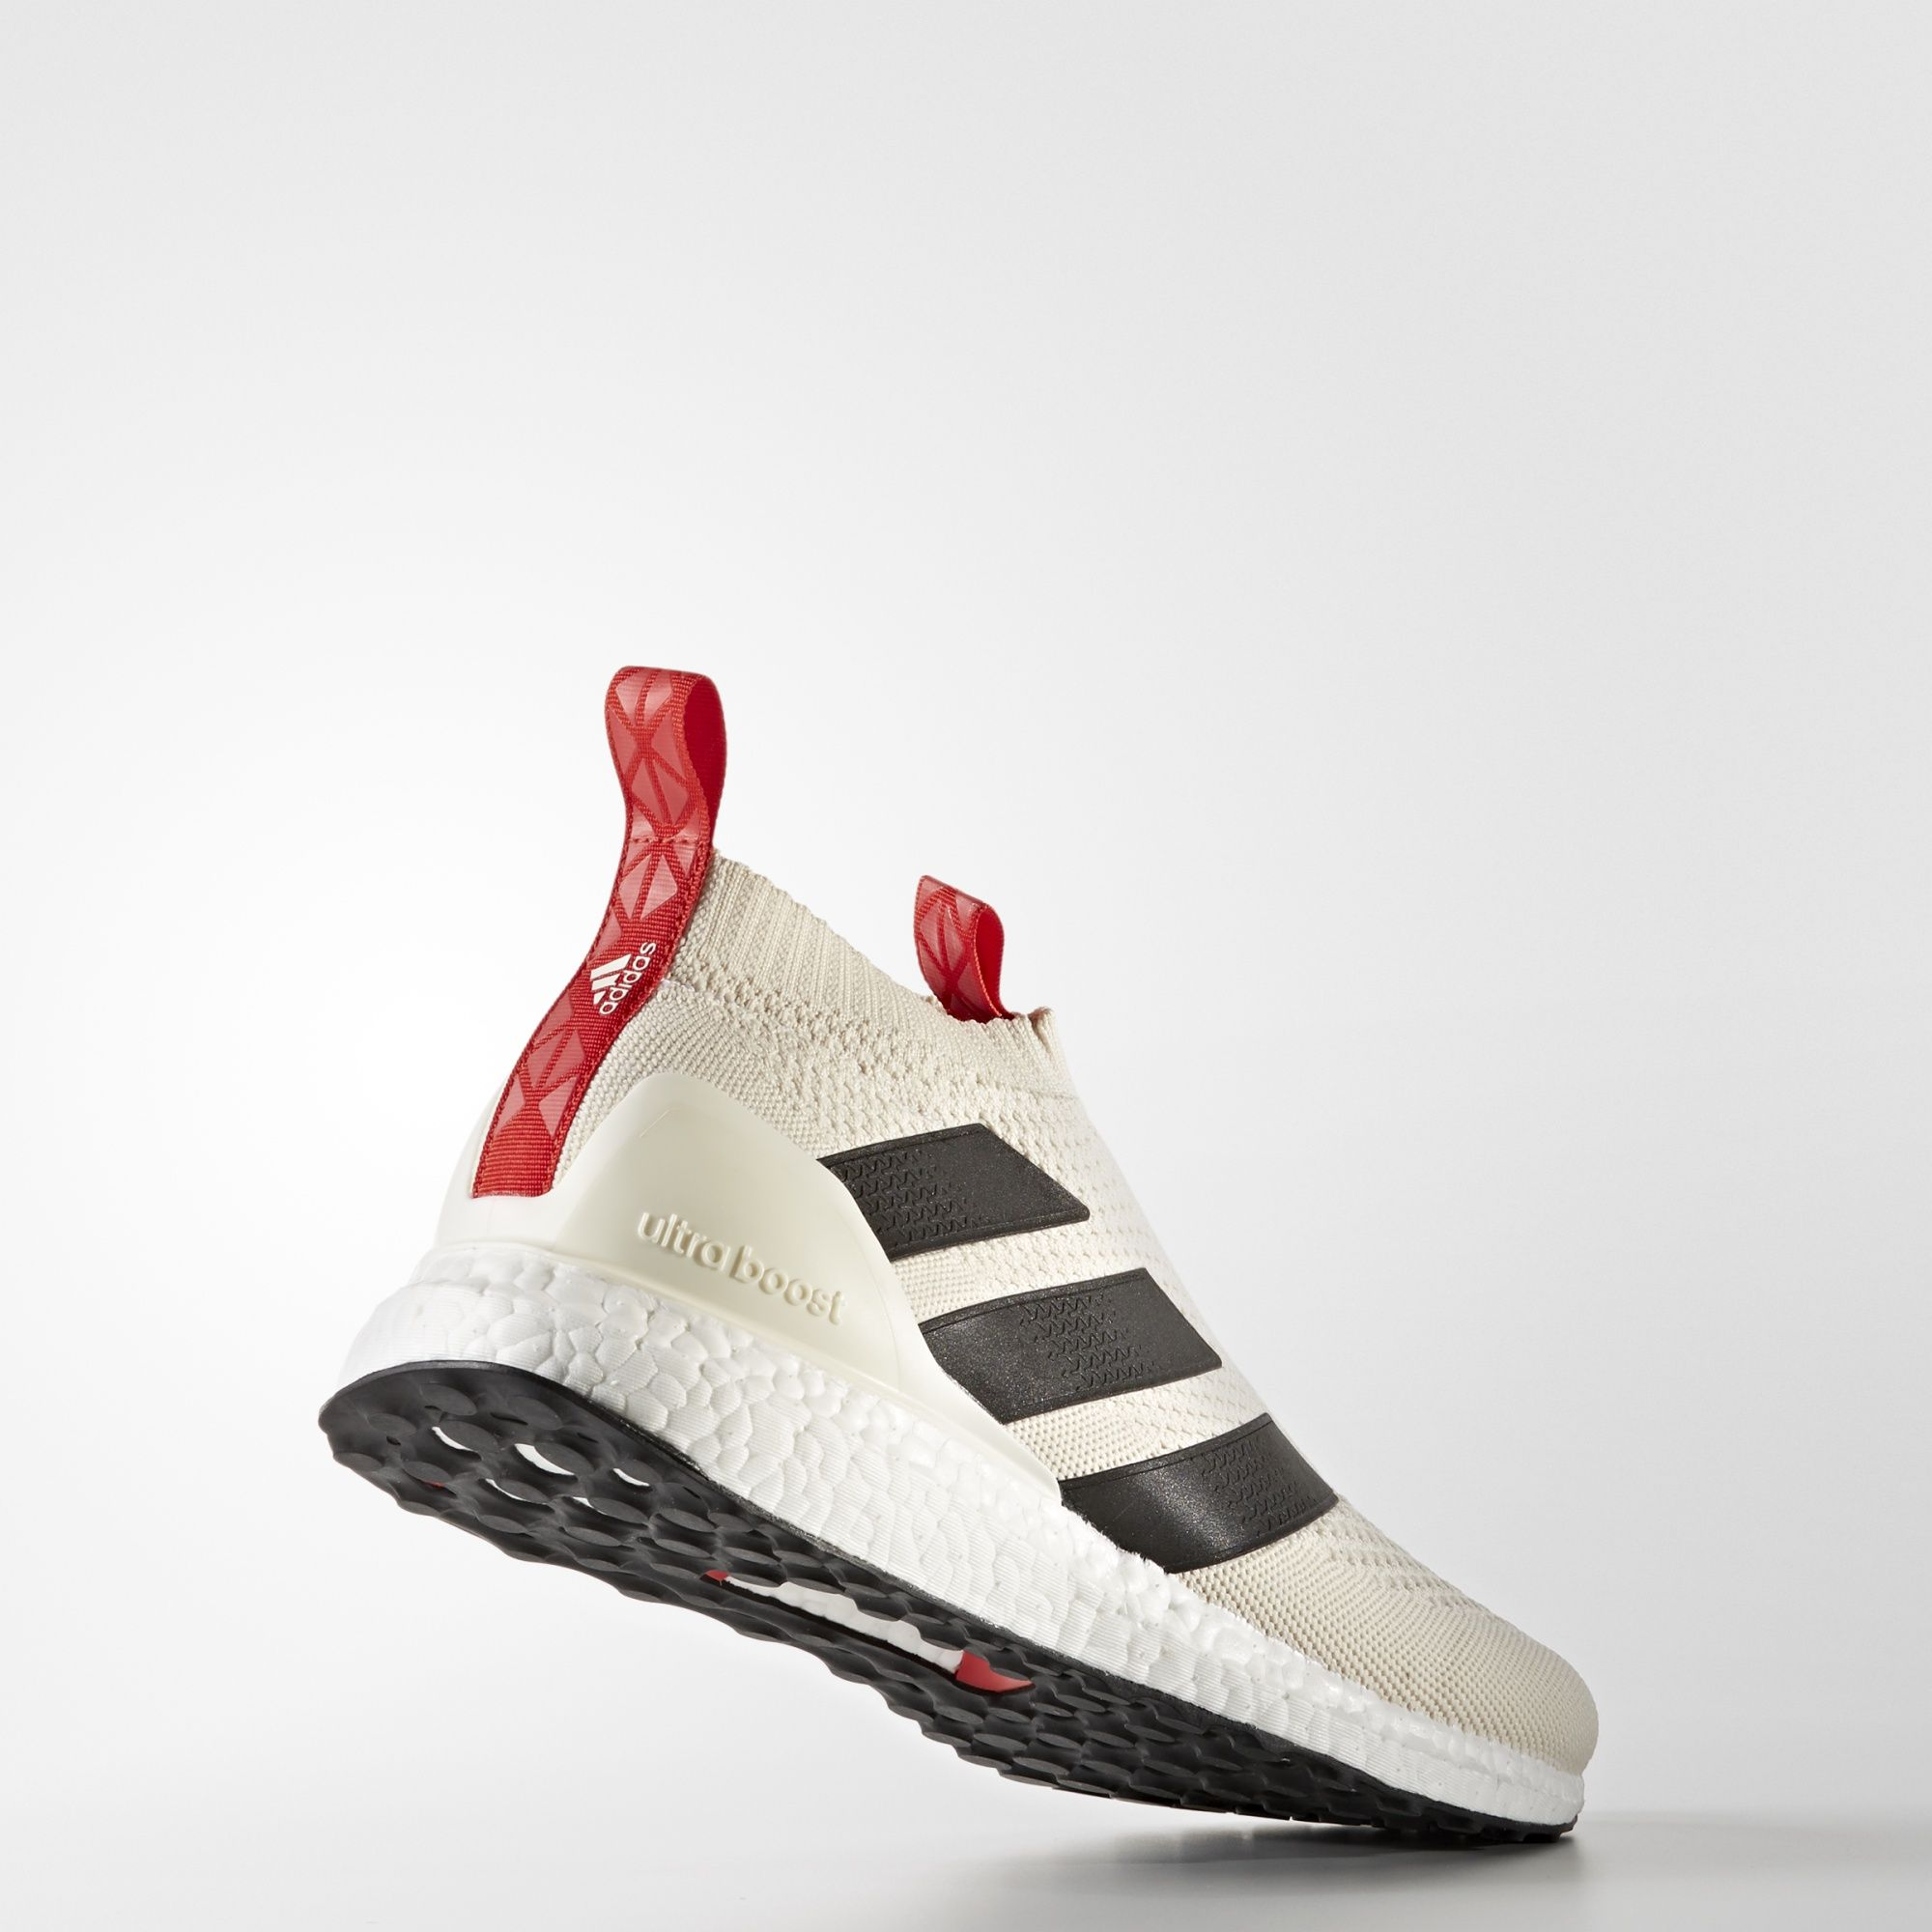 adidas ACE 16 Purecontrol Ultra Boost Off White BY9091 3